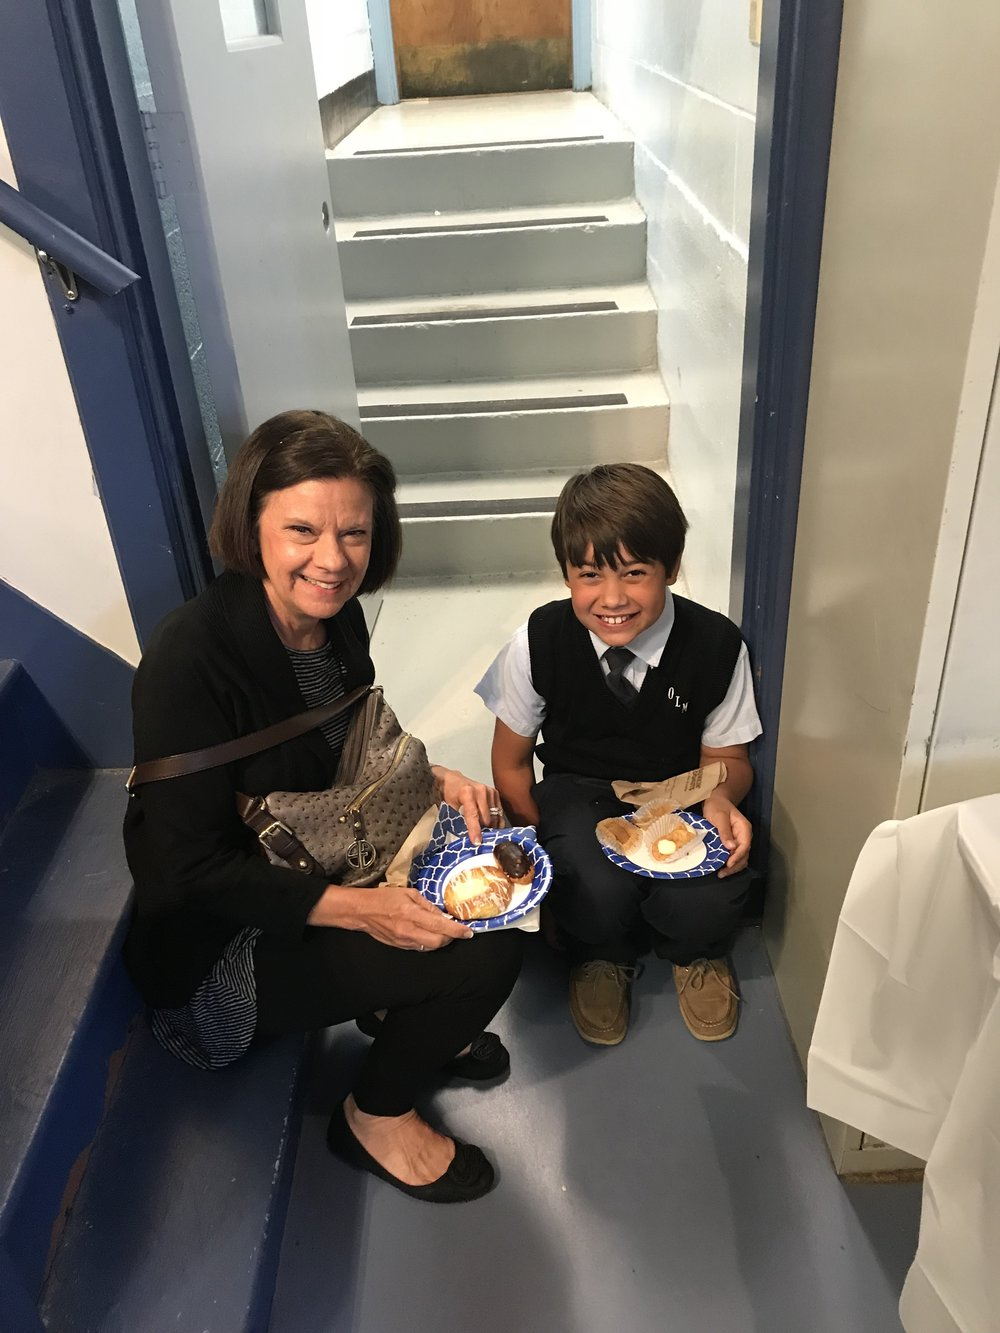 OLM 3rd Grader Ben Knudson enjoys some danish with his Grandmother, Debbie Knudson, who travelled from Scottsdale, Arizona for the celebration of OLM School Grandparents Day.